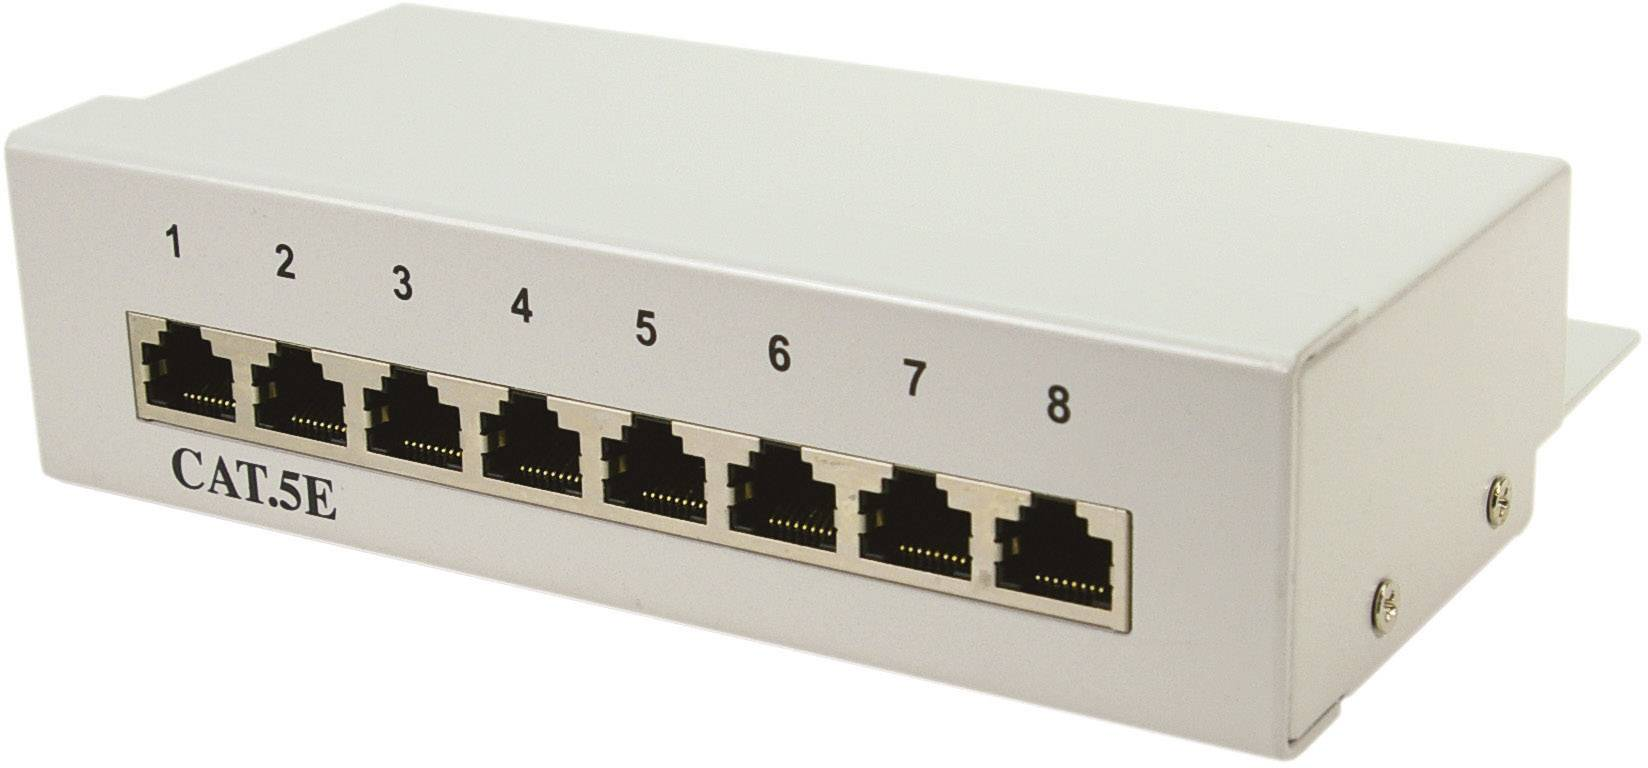 hight resolution of logilink np0038 8 ports network patch box cat 5e